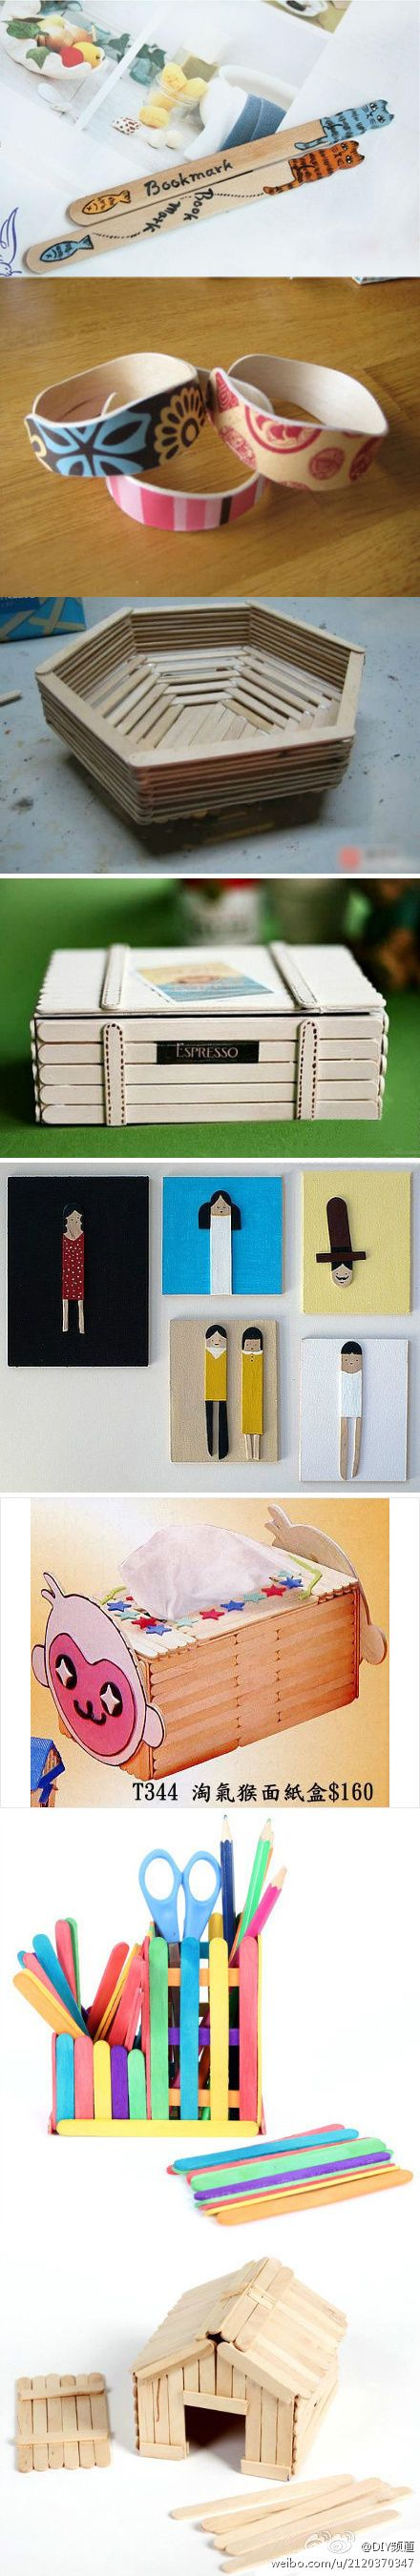 Popsicle sticks crafts